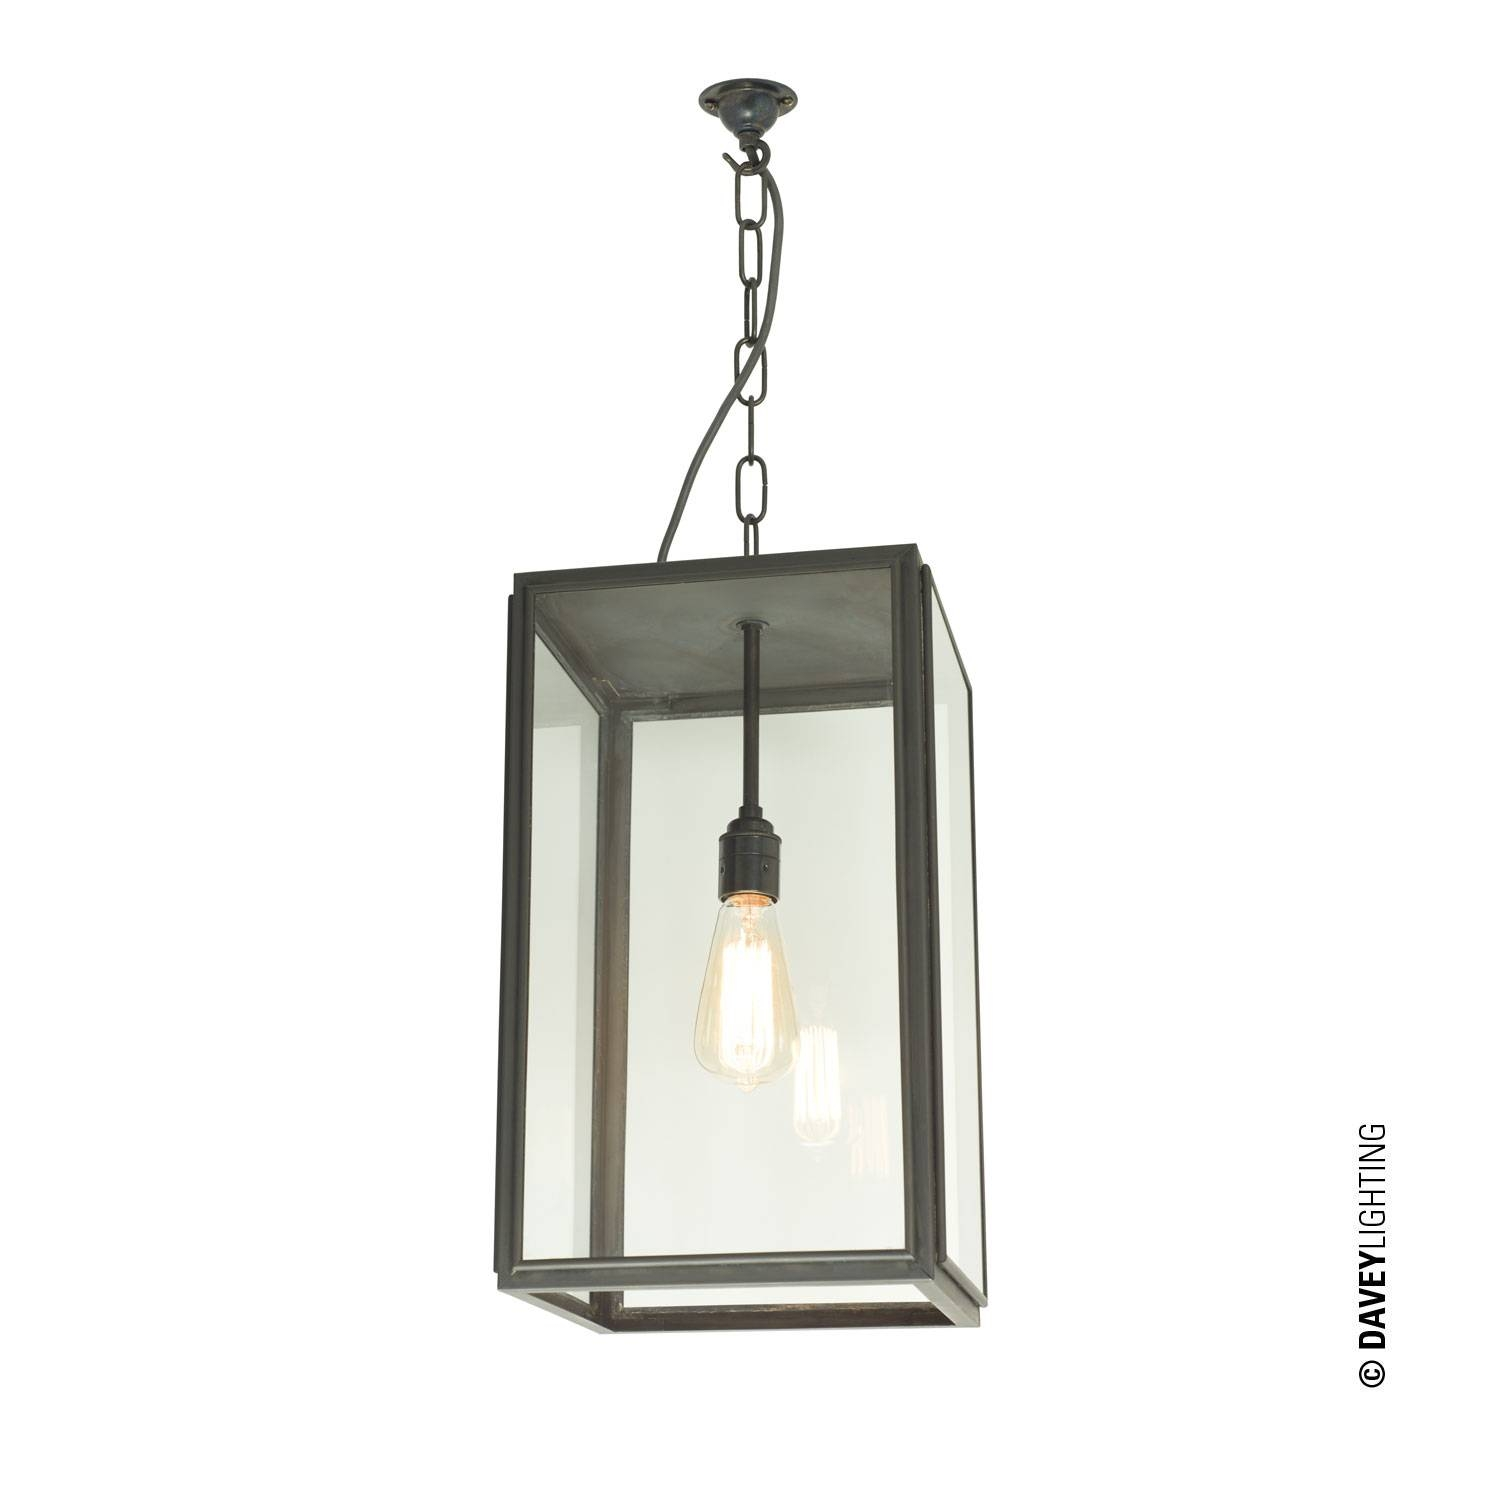 Lighting Quad Square Pendant Light External Glass Closed Top Intended For Square Pendant Light Fixtures (View 11 of 15)